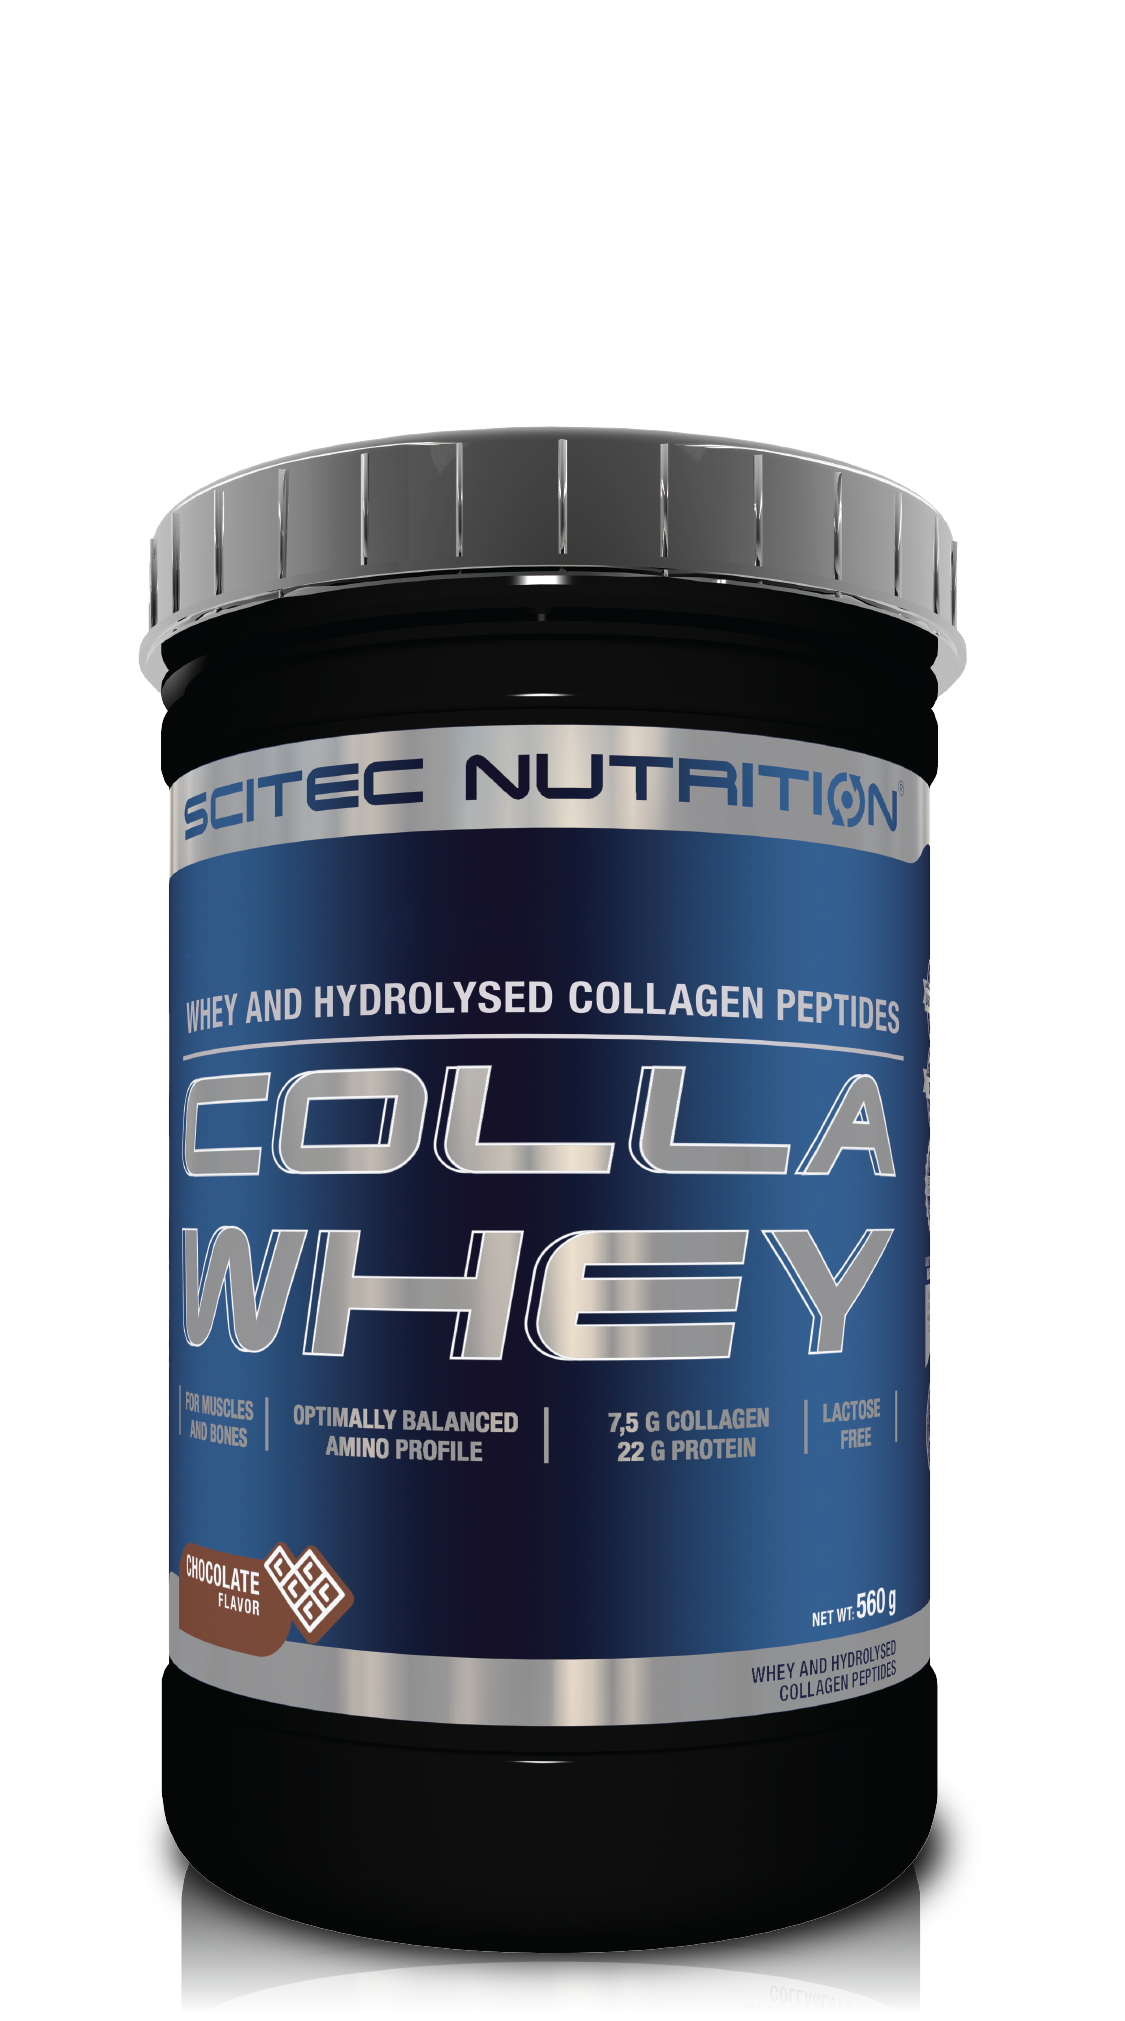 Collawhey (Collagen + Whey Protein)